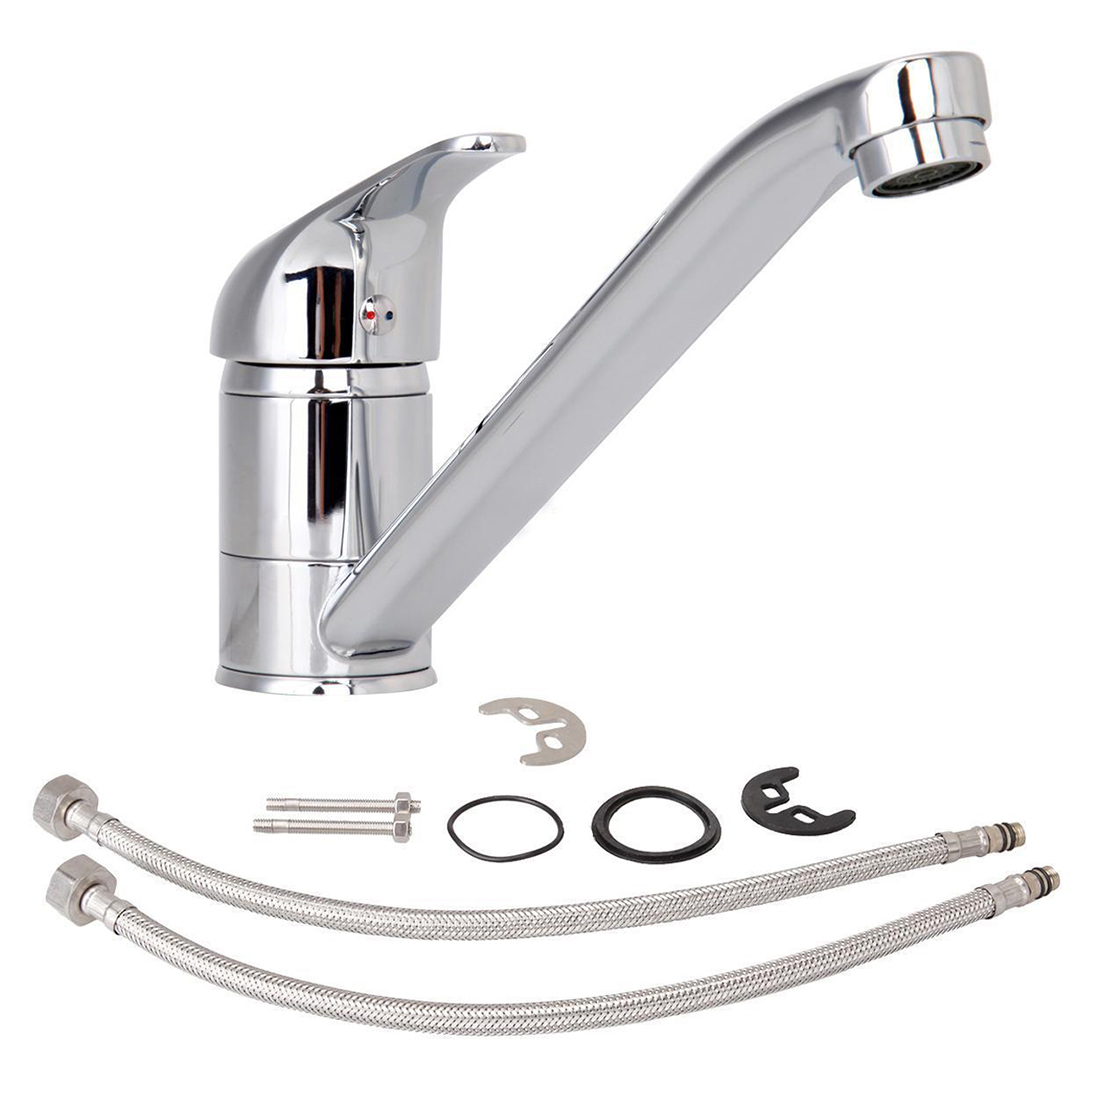 Waterfall Faucet Wash Basin Faucet Wash Basin Mixer Faucet Water Diffuser Chrome Plated Kitchen Mixer Tap ith 40cm Braided Hoses